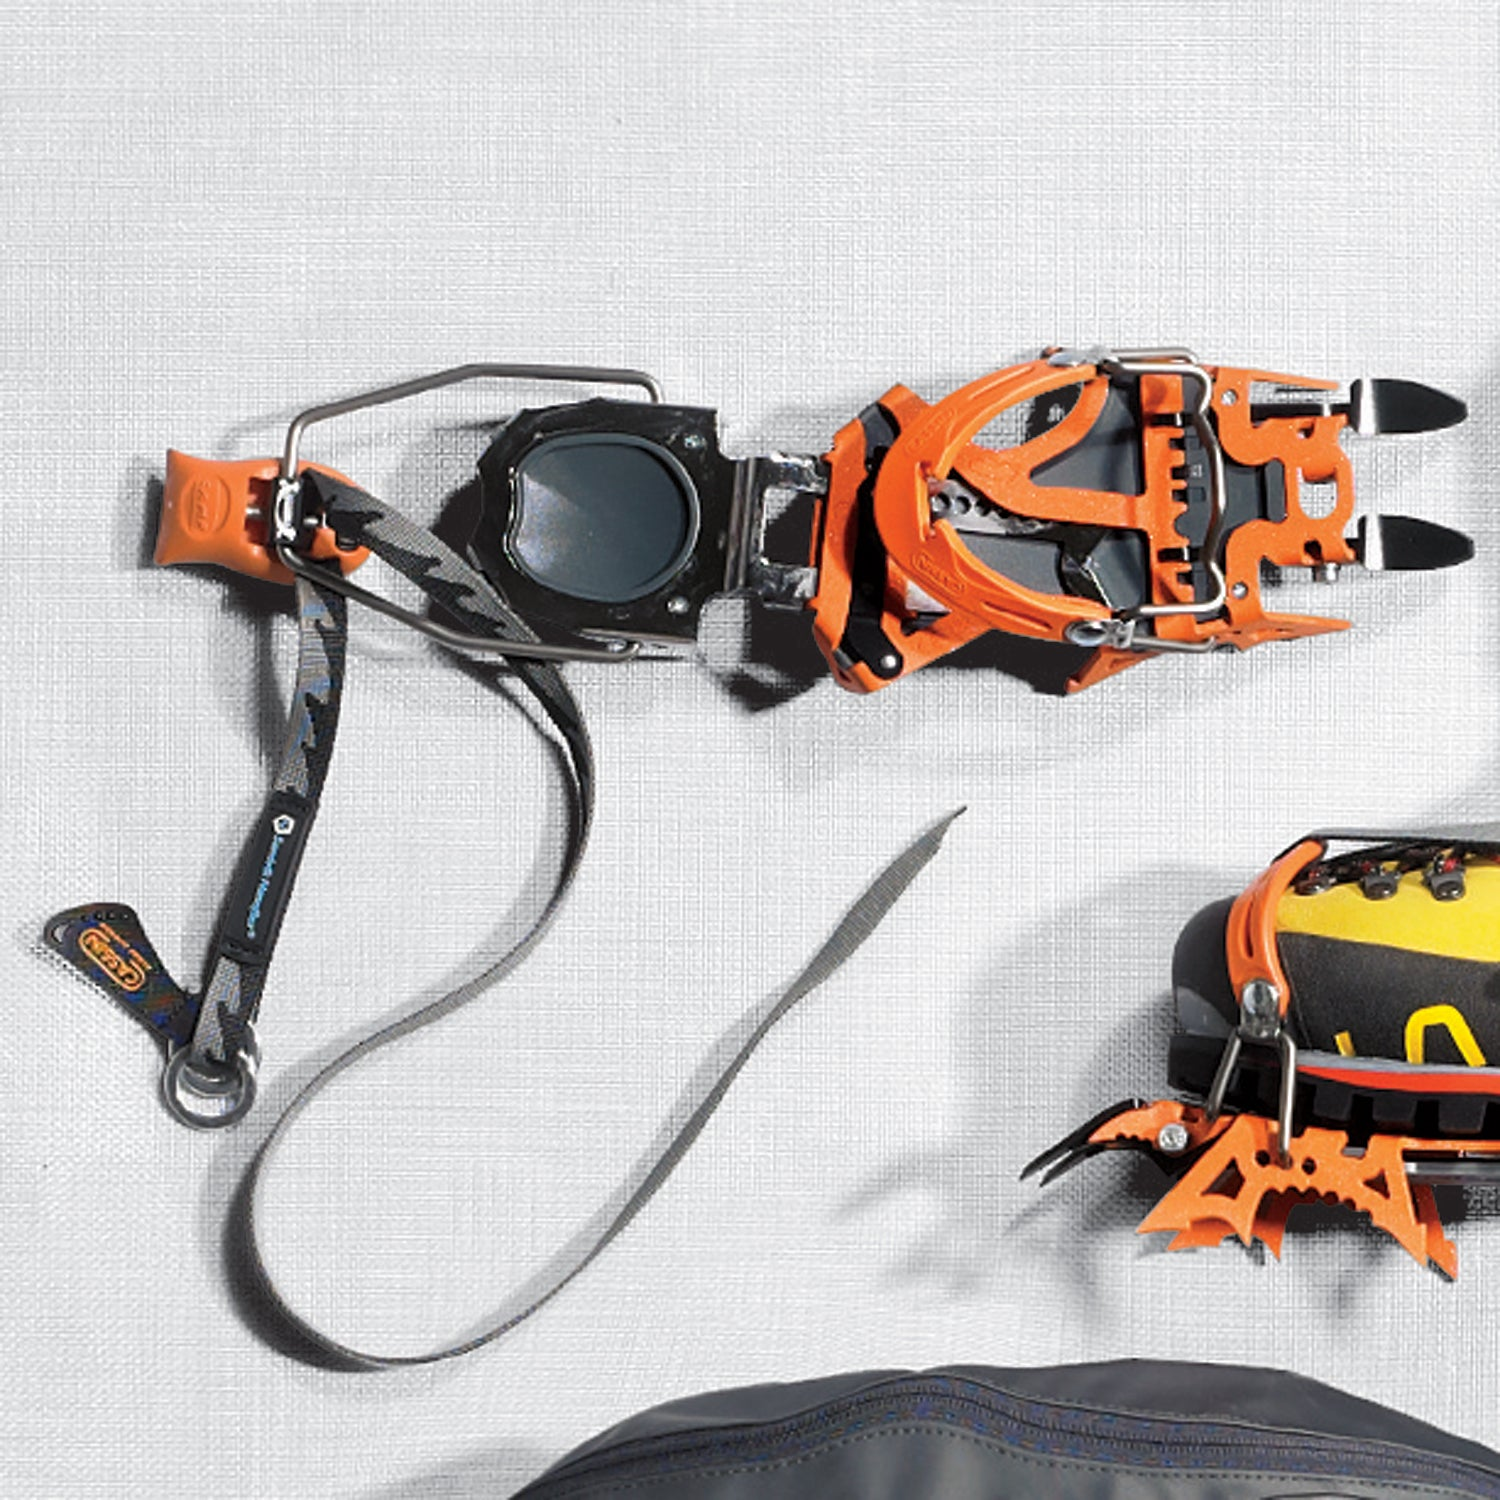 beal gully 7.3mm ultimate nordp mammut el cap helmet la sportiva nepal cube gtx boot cassin blade runner crampons the north face ice project pack arcteryx alpha comp pants grivel tech machine ax petzl corax harness winter ice climbing winter buyer's guide outside